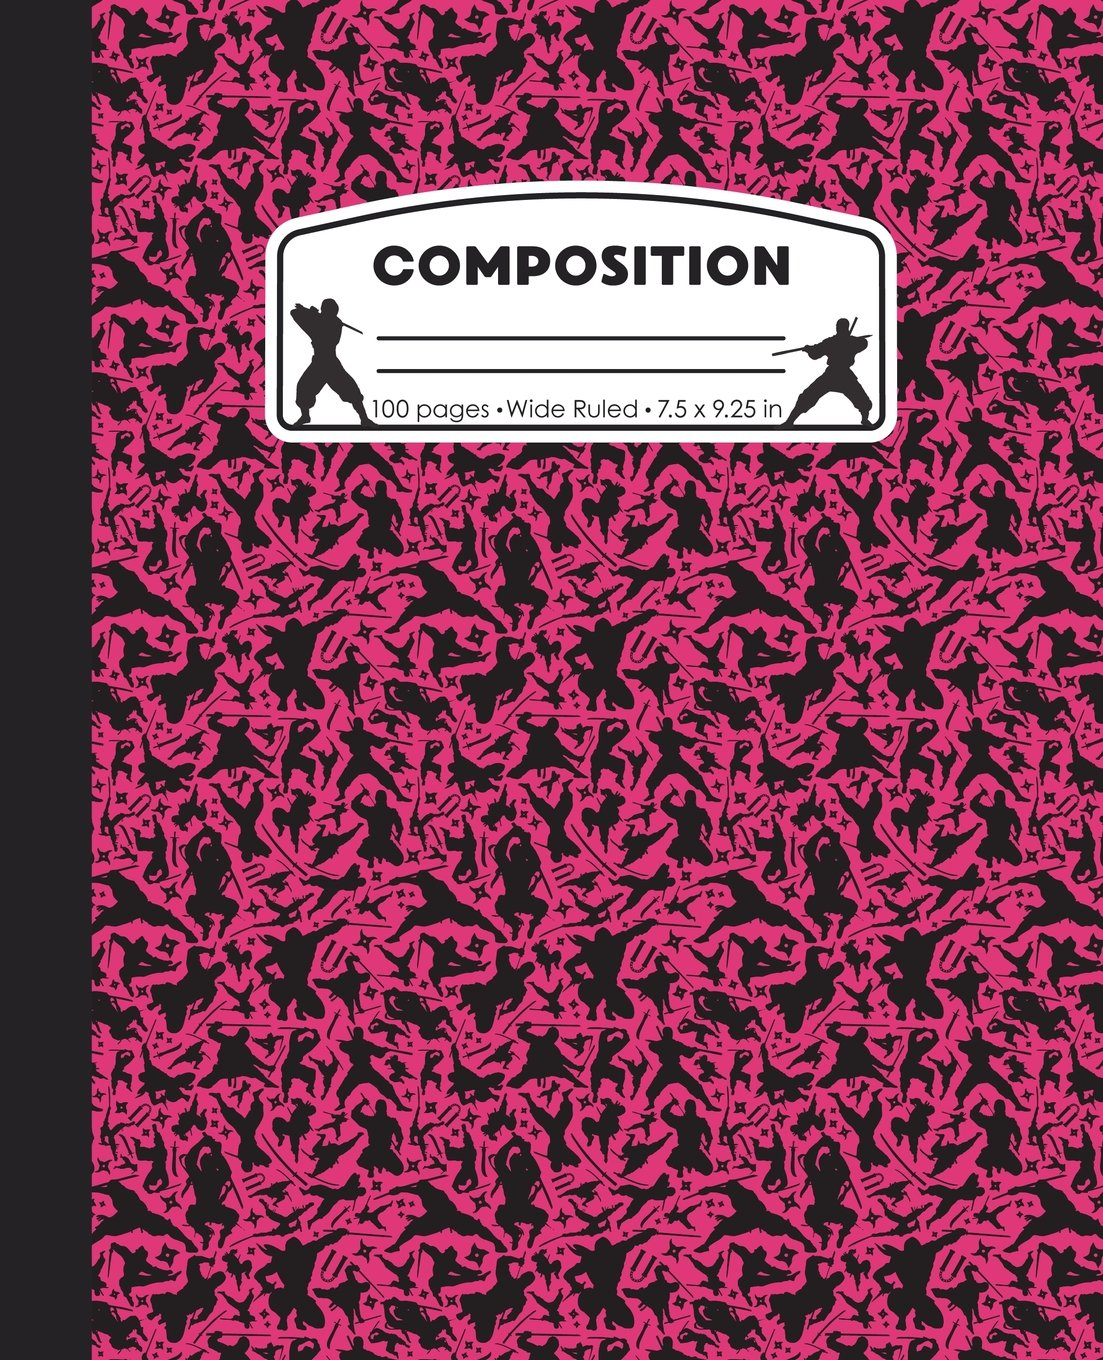 Composition: Ninja Pink Marble Composition Notebook. Ninjas Wide Ruled 7.5 x 9.25 in, 100 pages journal for girls boys, kids, elementary school students and teachers (Ninja Marble Composition Books) PDF